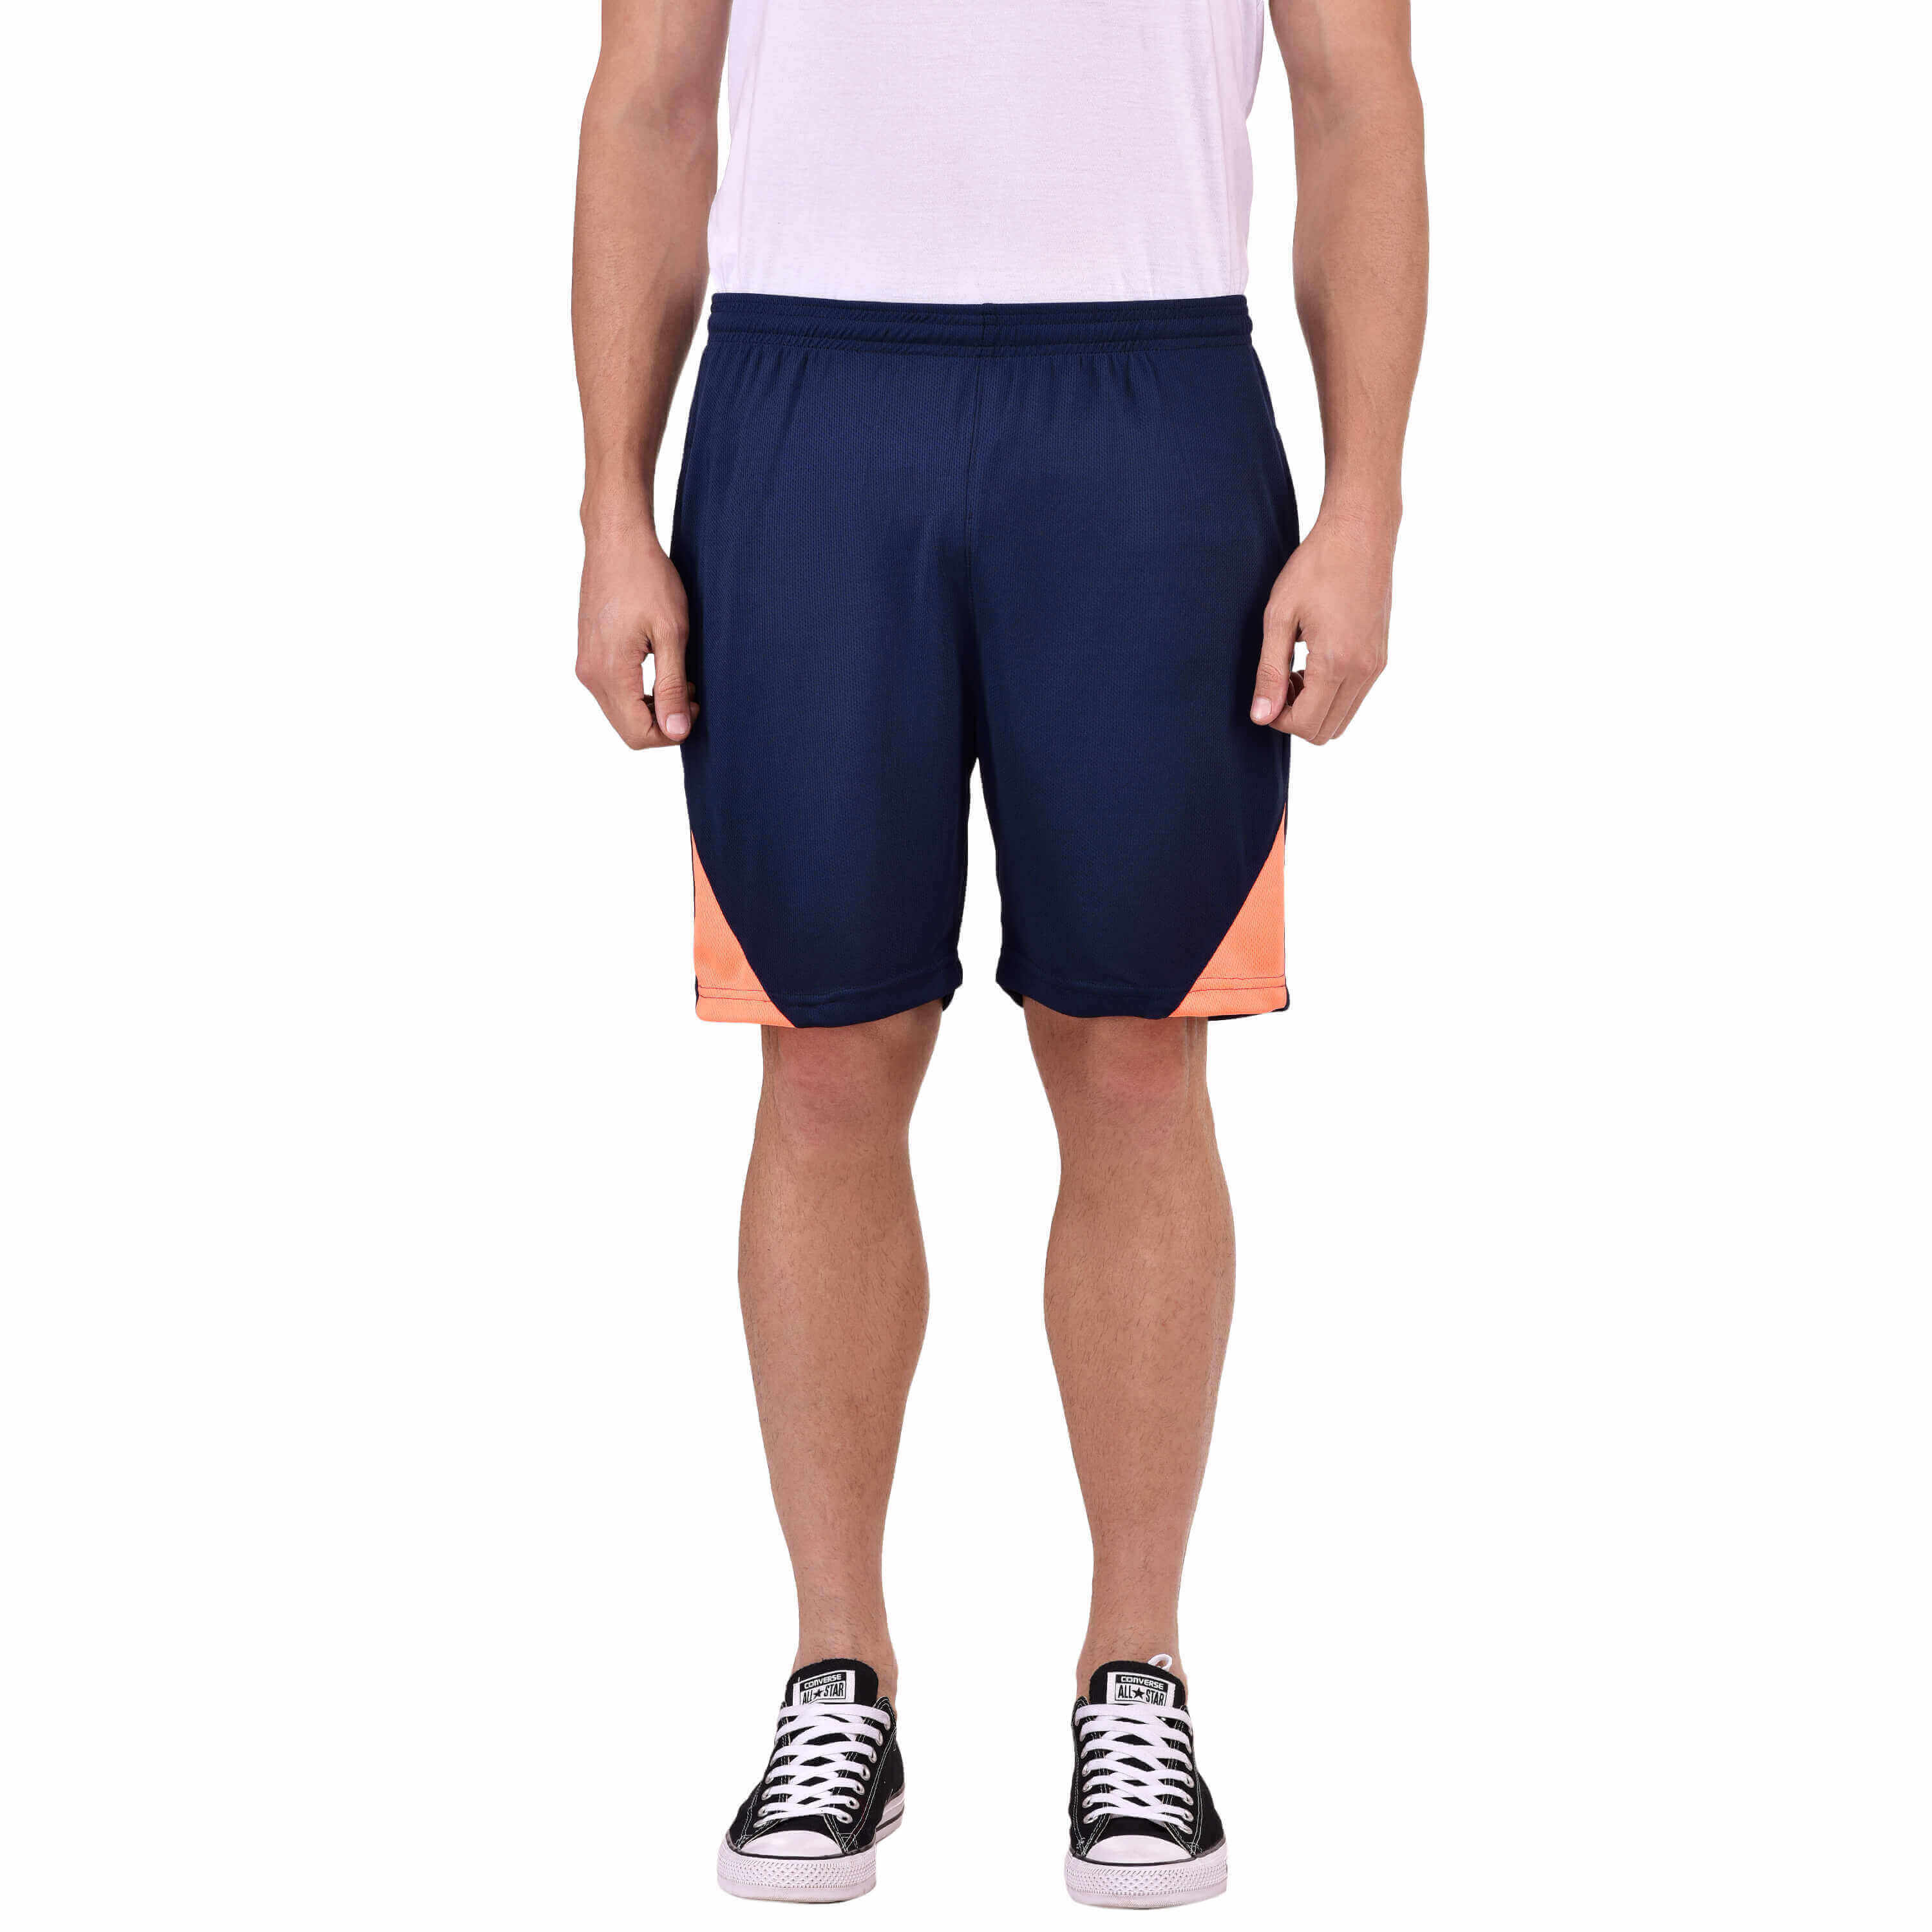 Football Shorts Manufacturers in Patna